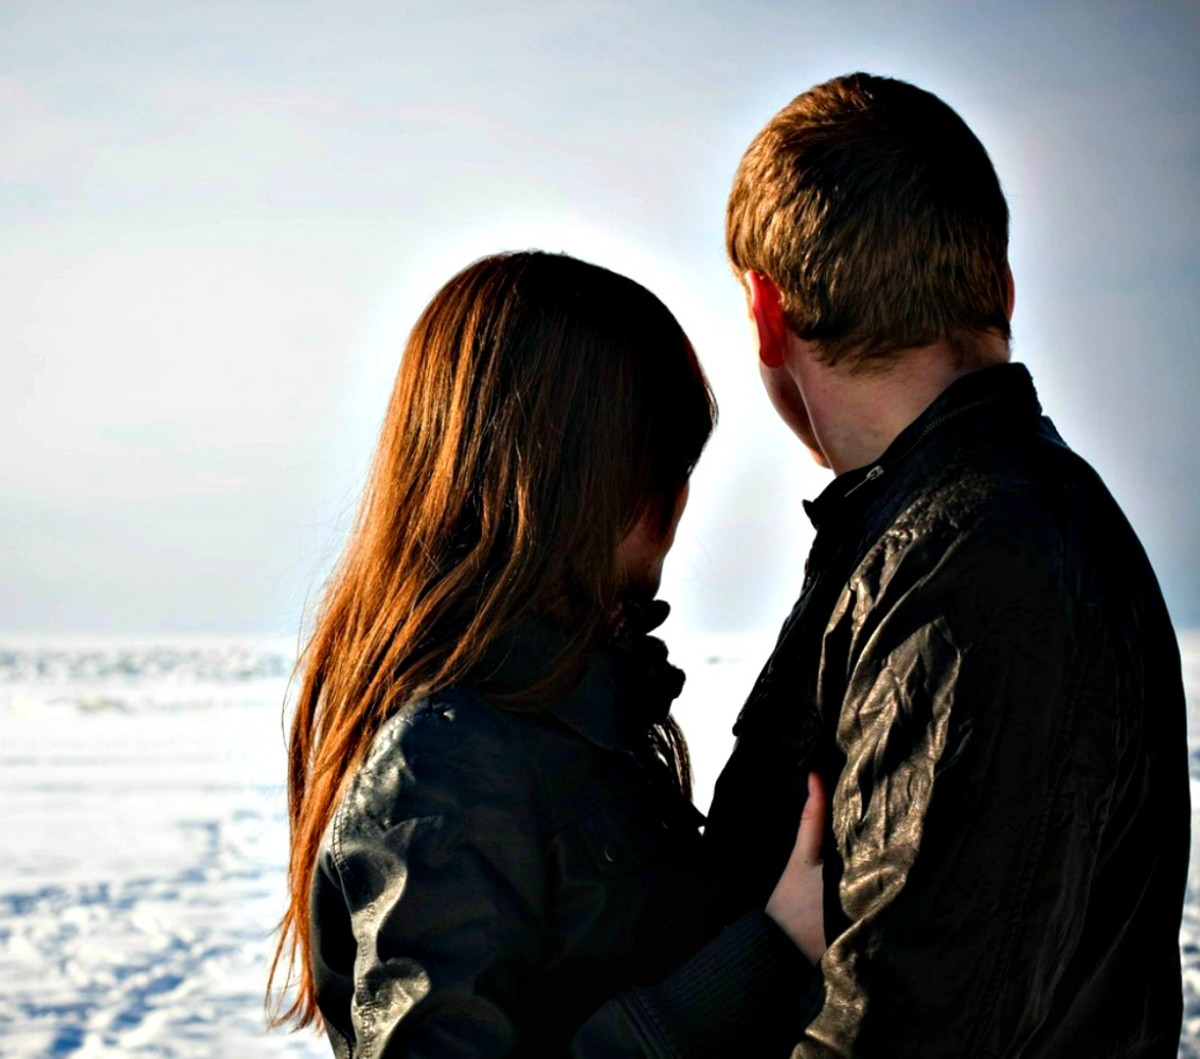 Couples should consider the pros and cons of living together carefully.